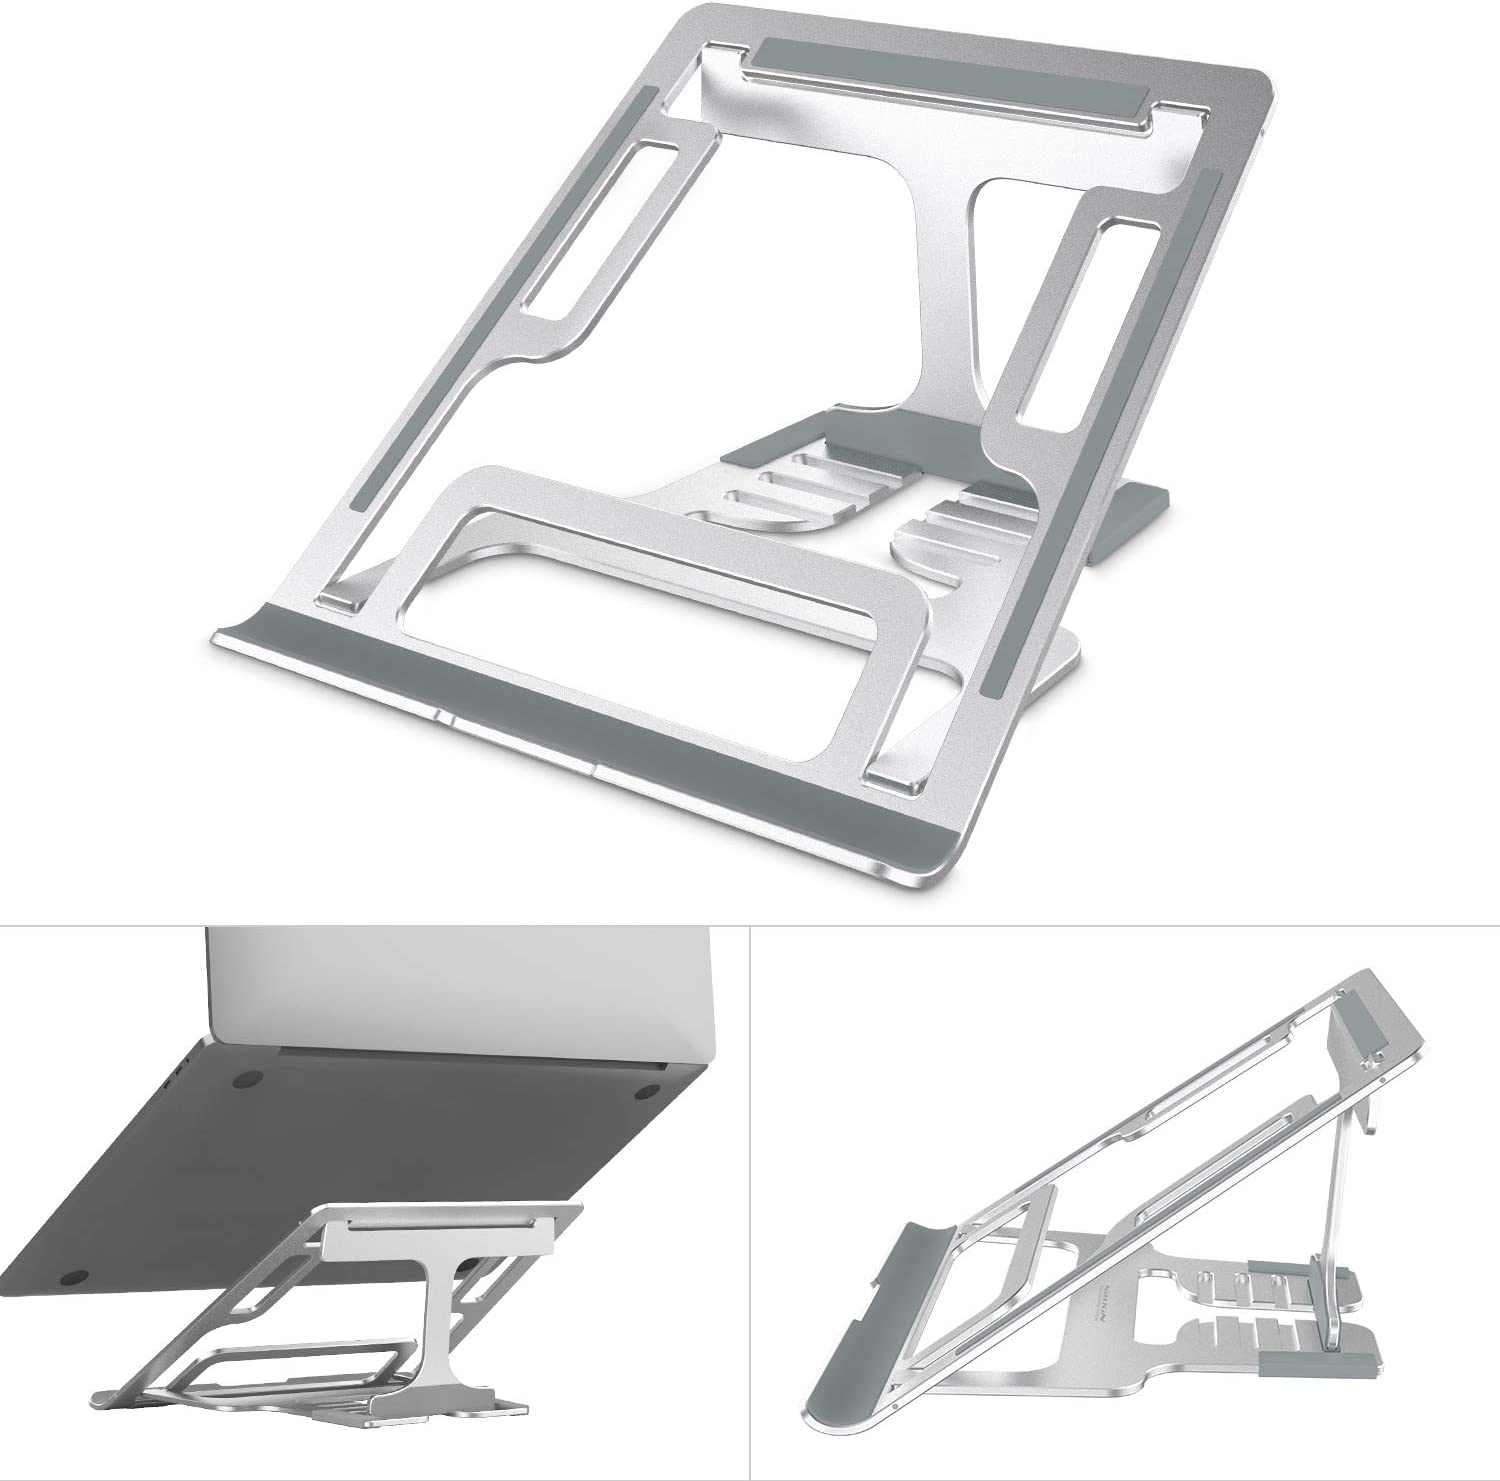 Nillkin Adjustable Laptop Stand for Desk - 5 Angles Adjustable Foldable Laptop stand Riser Holder,Ergonomic Computer Stand for Laptop,Compatible with MacBook Pro/Air,Dell, Lenovo More 11''~17'' Laptop